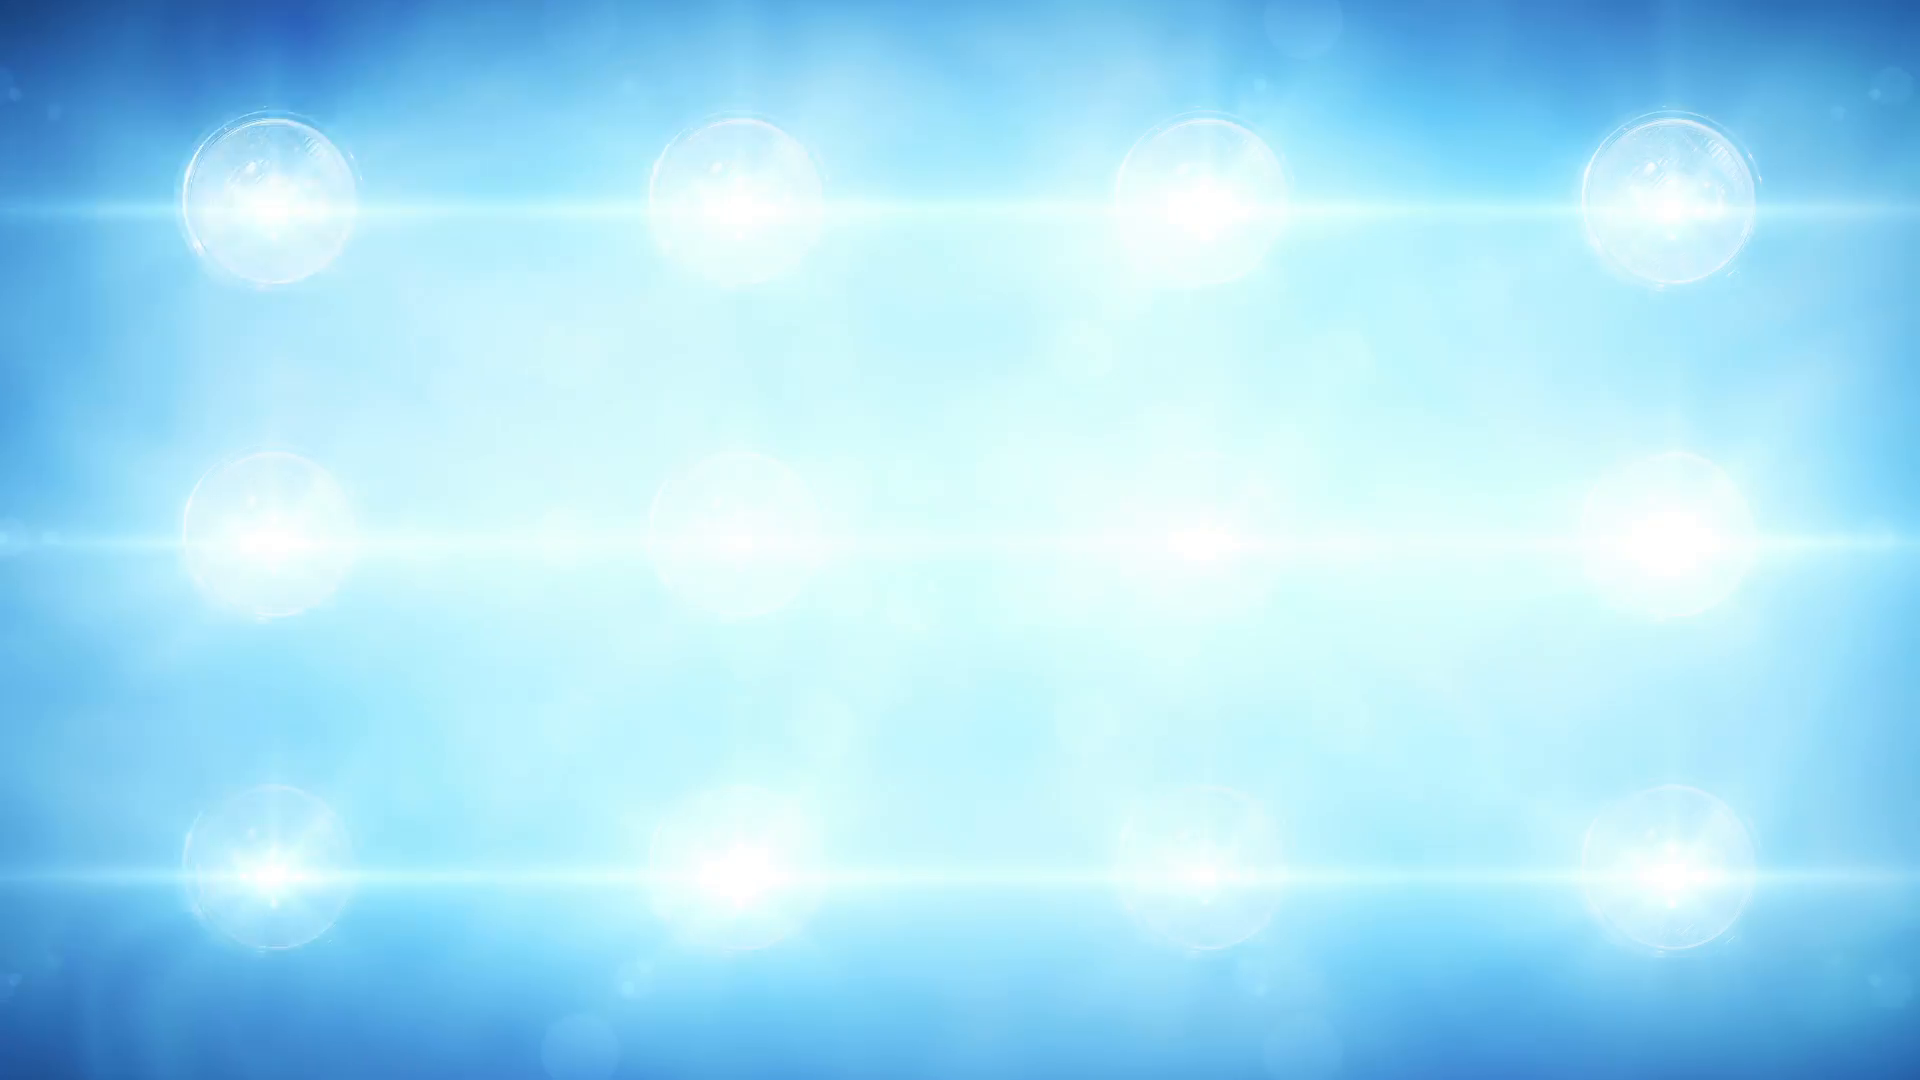 Stage Lights PNG HD - 135857